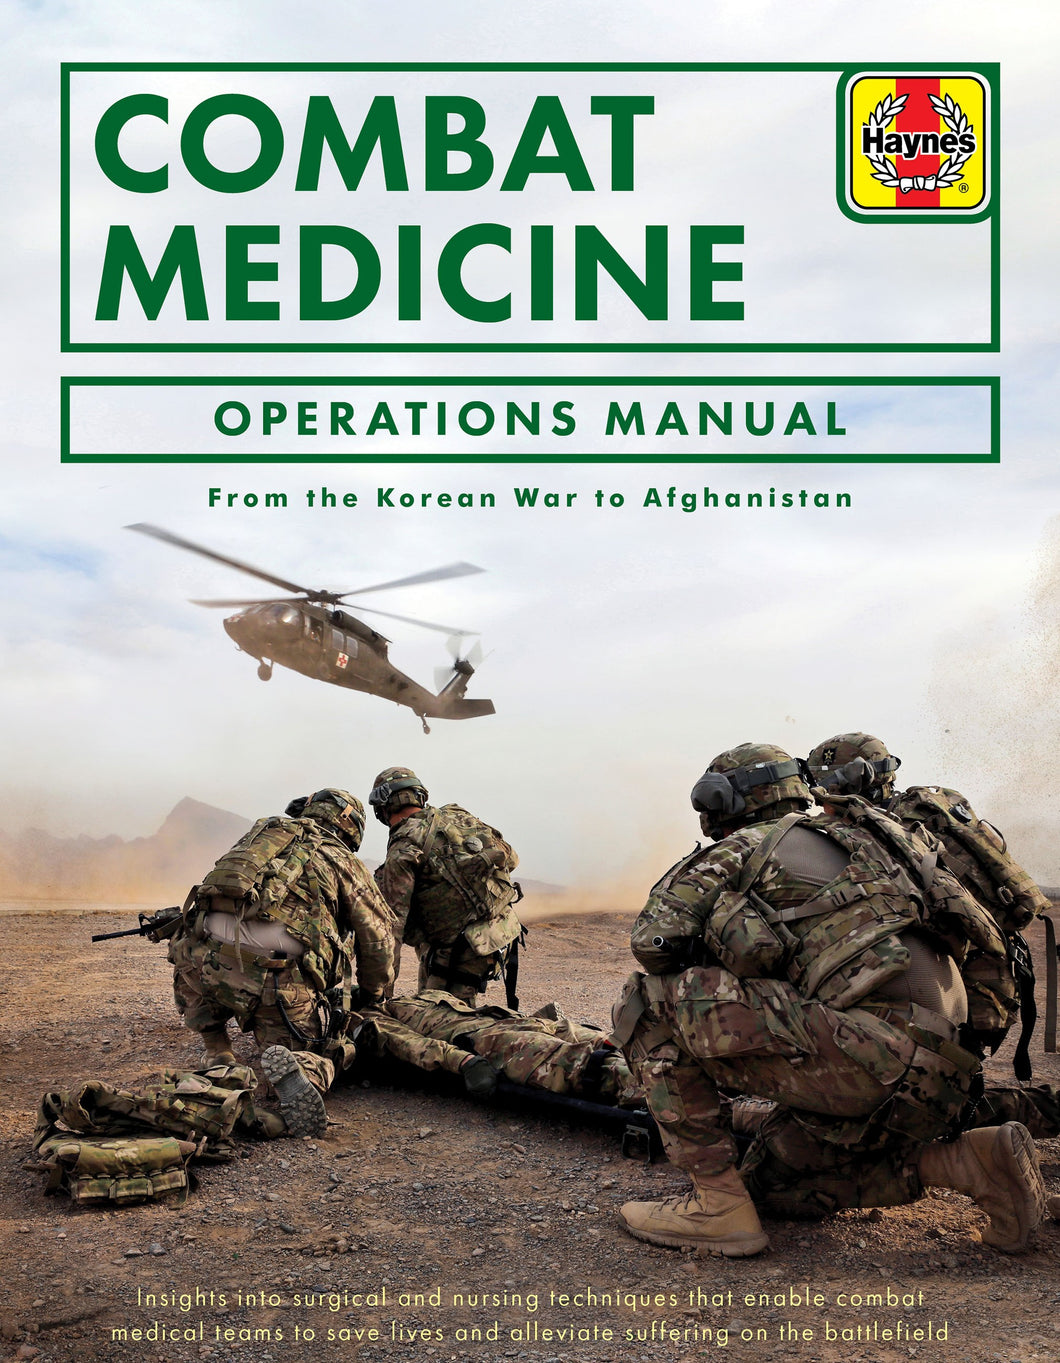 Combat Medicine Operations Manual - The Tank Museum